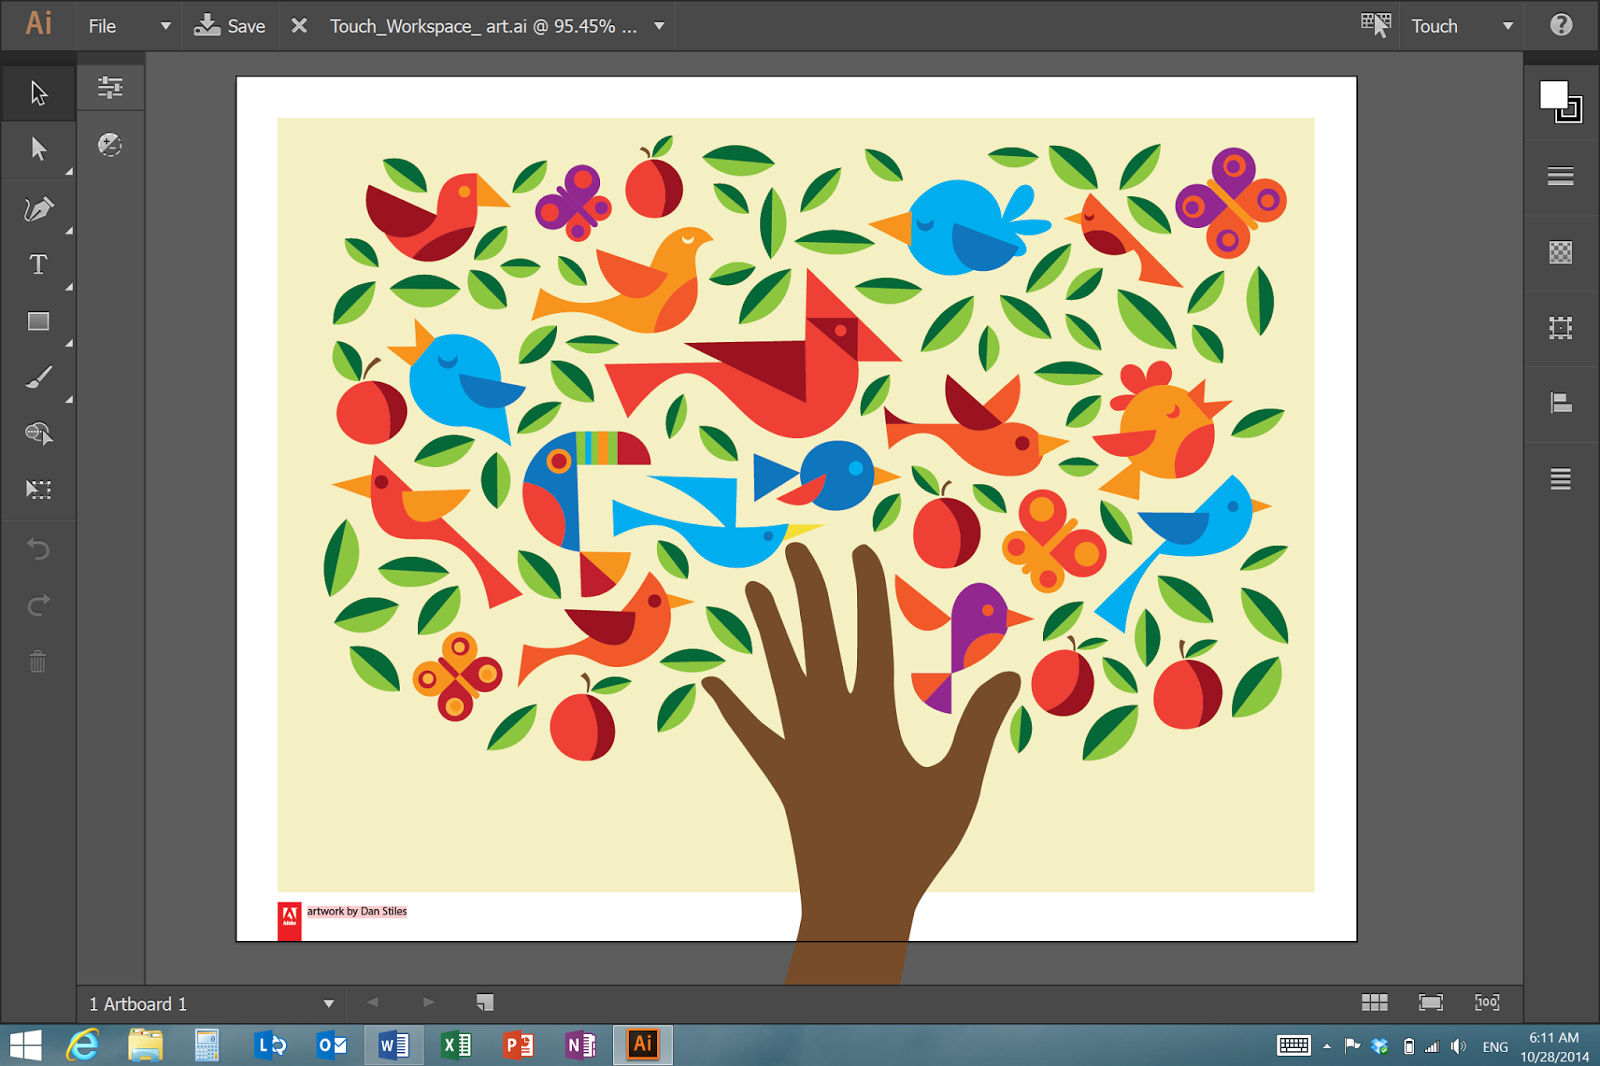 adobe illustrator cc download full version